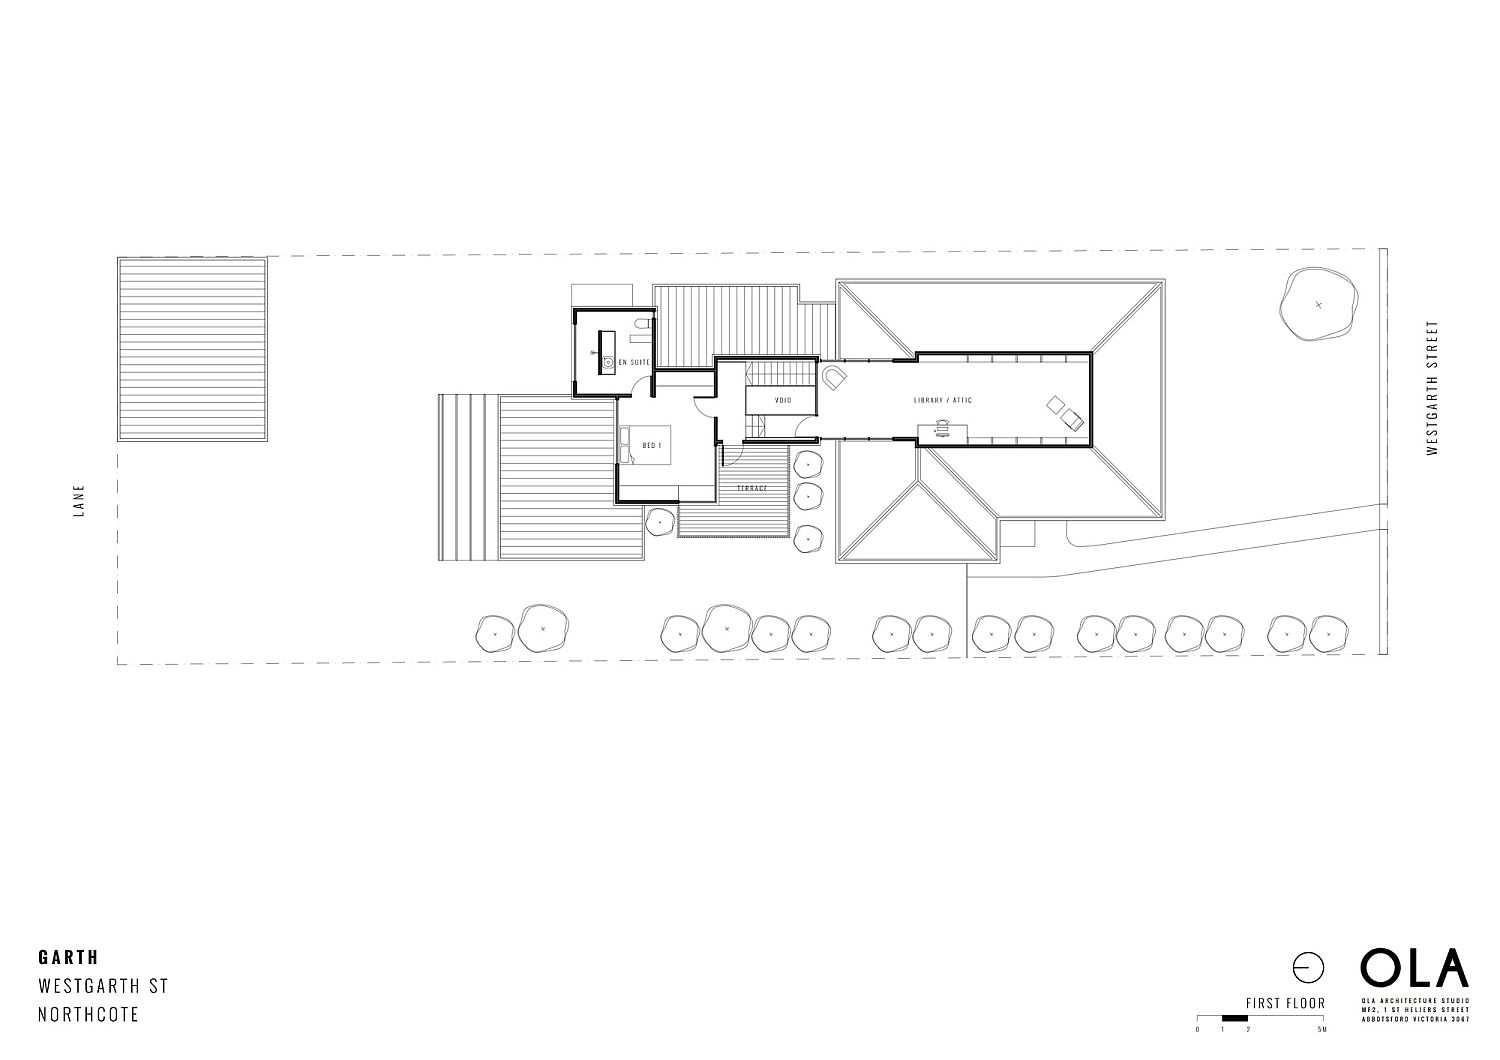 Floor plan of second floor of Garth